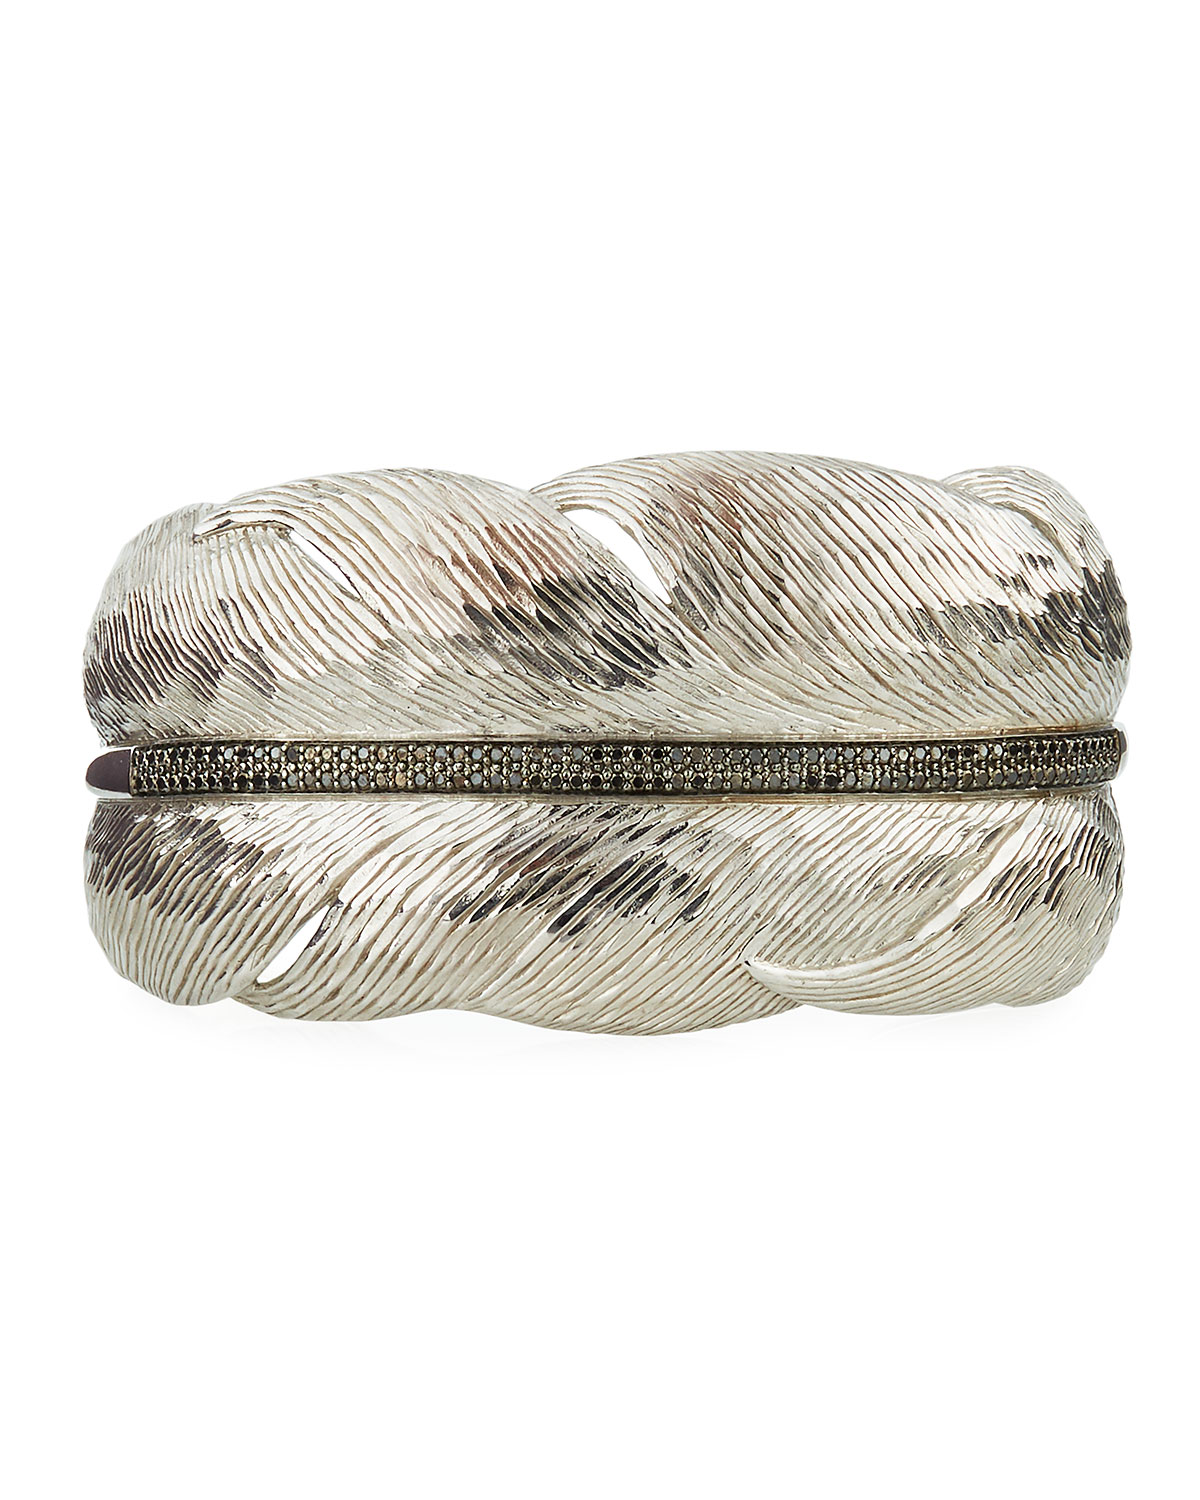 Michael Aram Wide Feather Cuff Bracelet w/ Diamonds